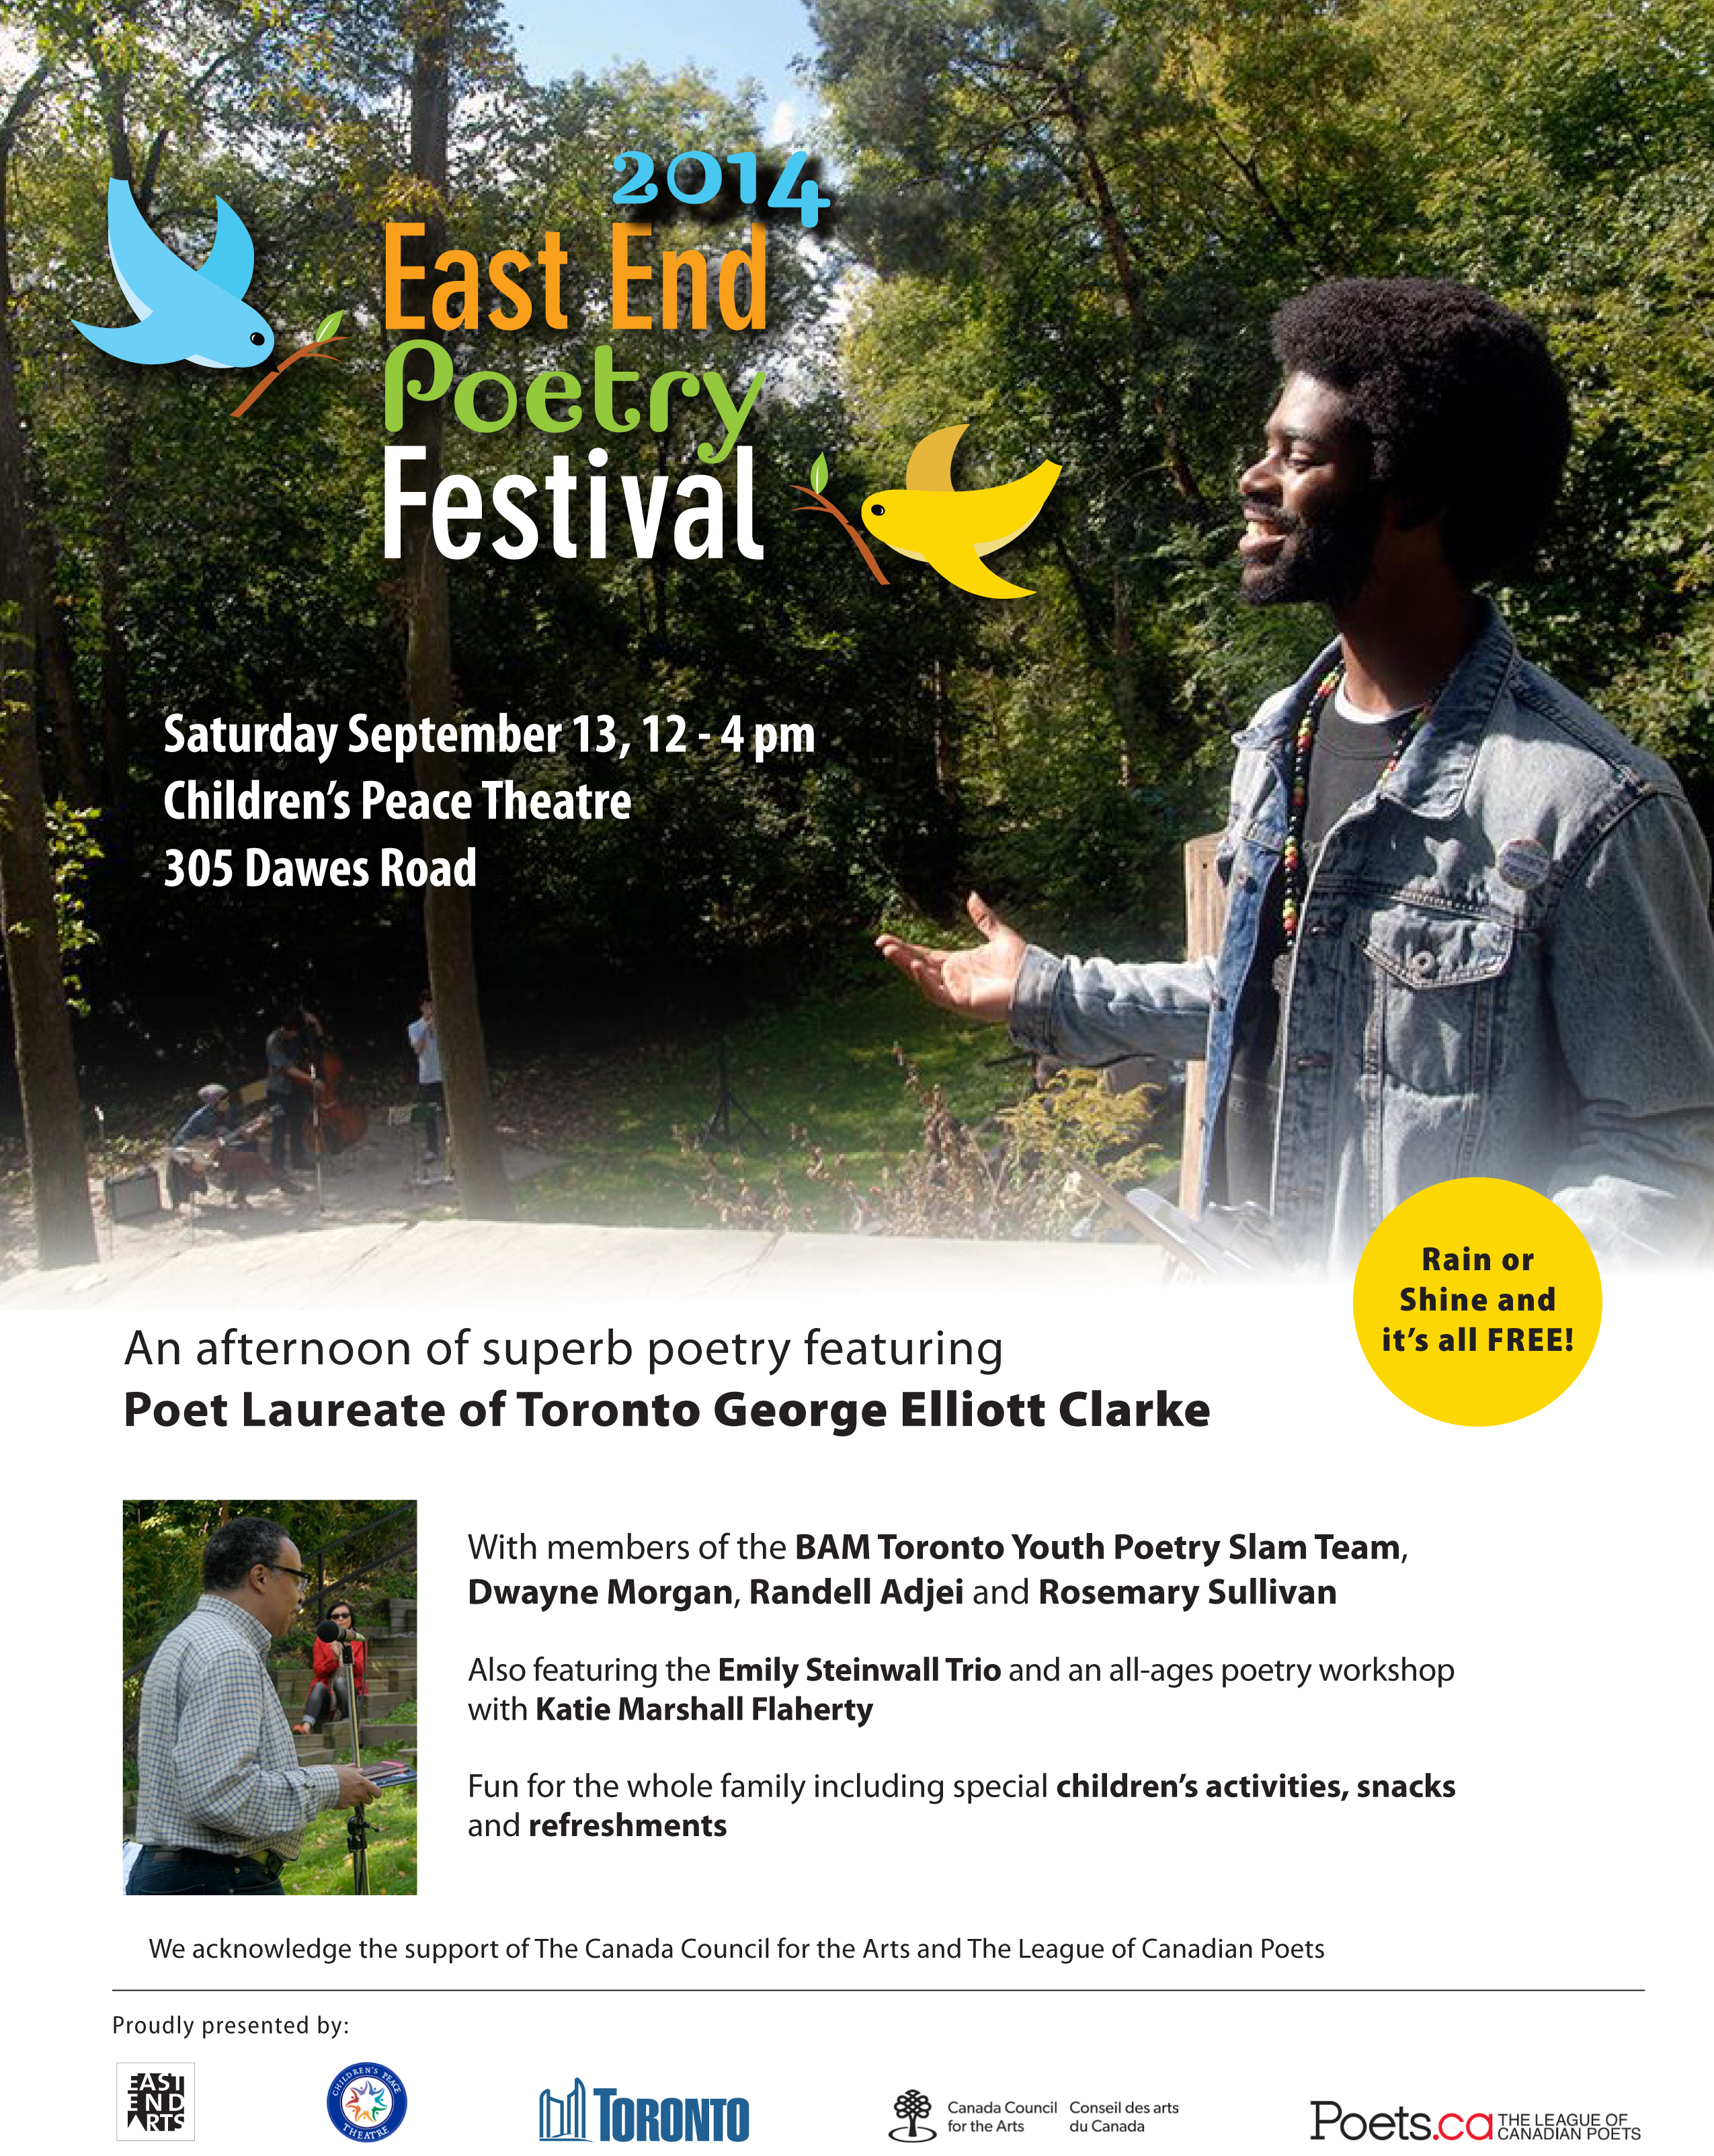 2014 East End Poetry Festival - September 13, 12-4pm at Children's Peace Theatre